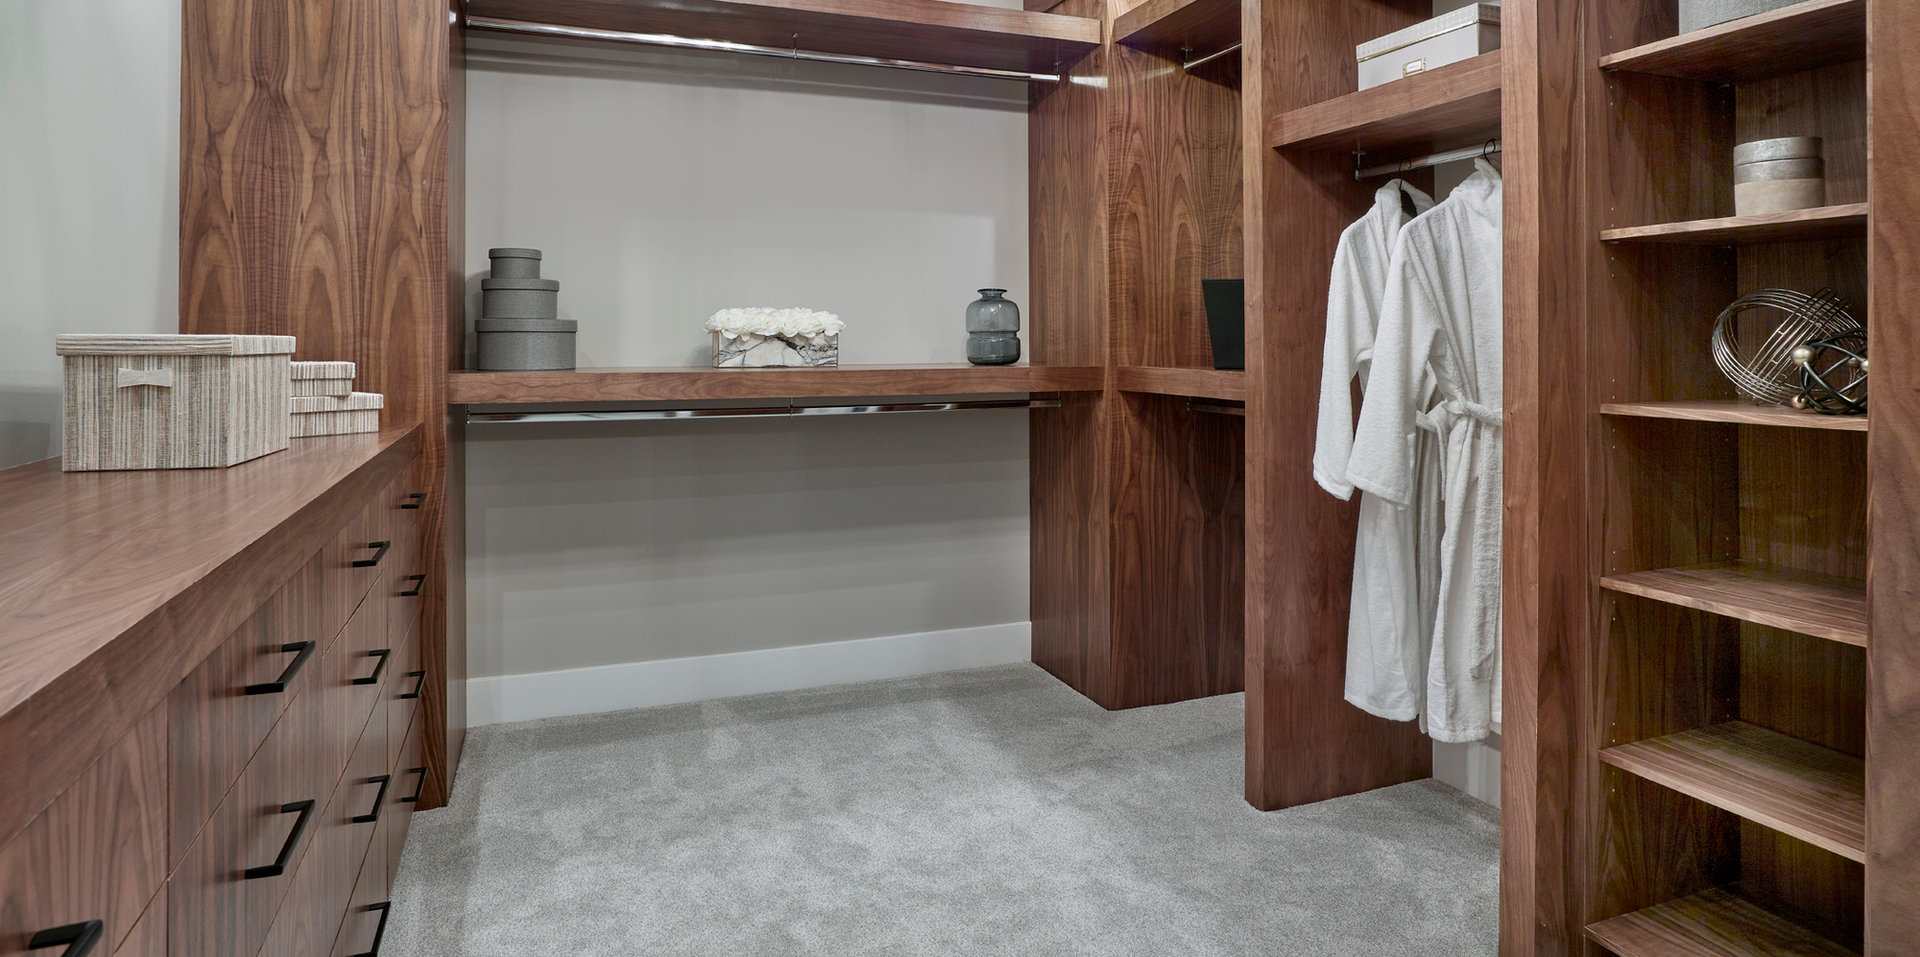 Walk-in Closet Aacropolis Homes